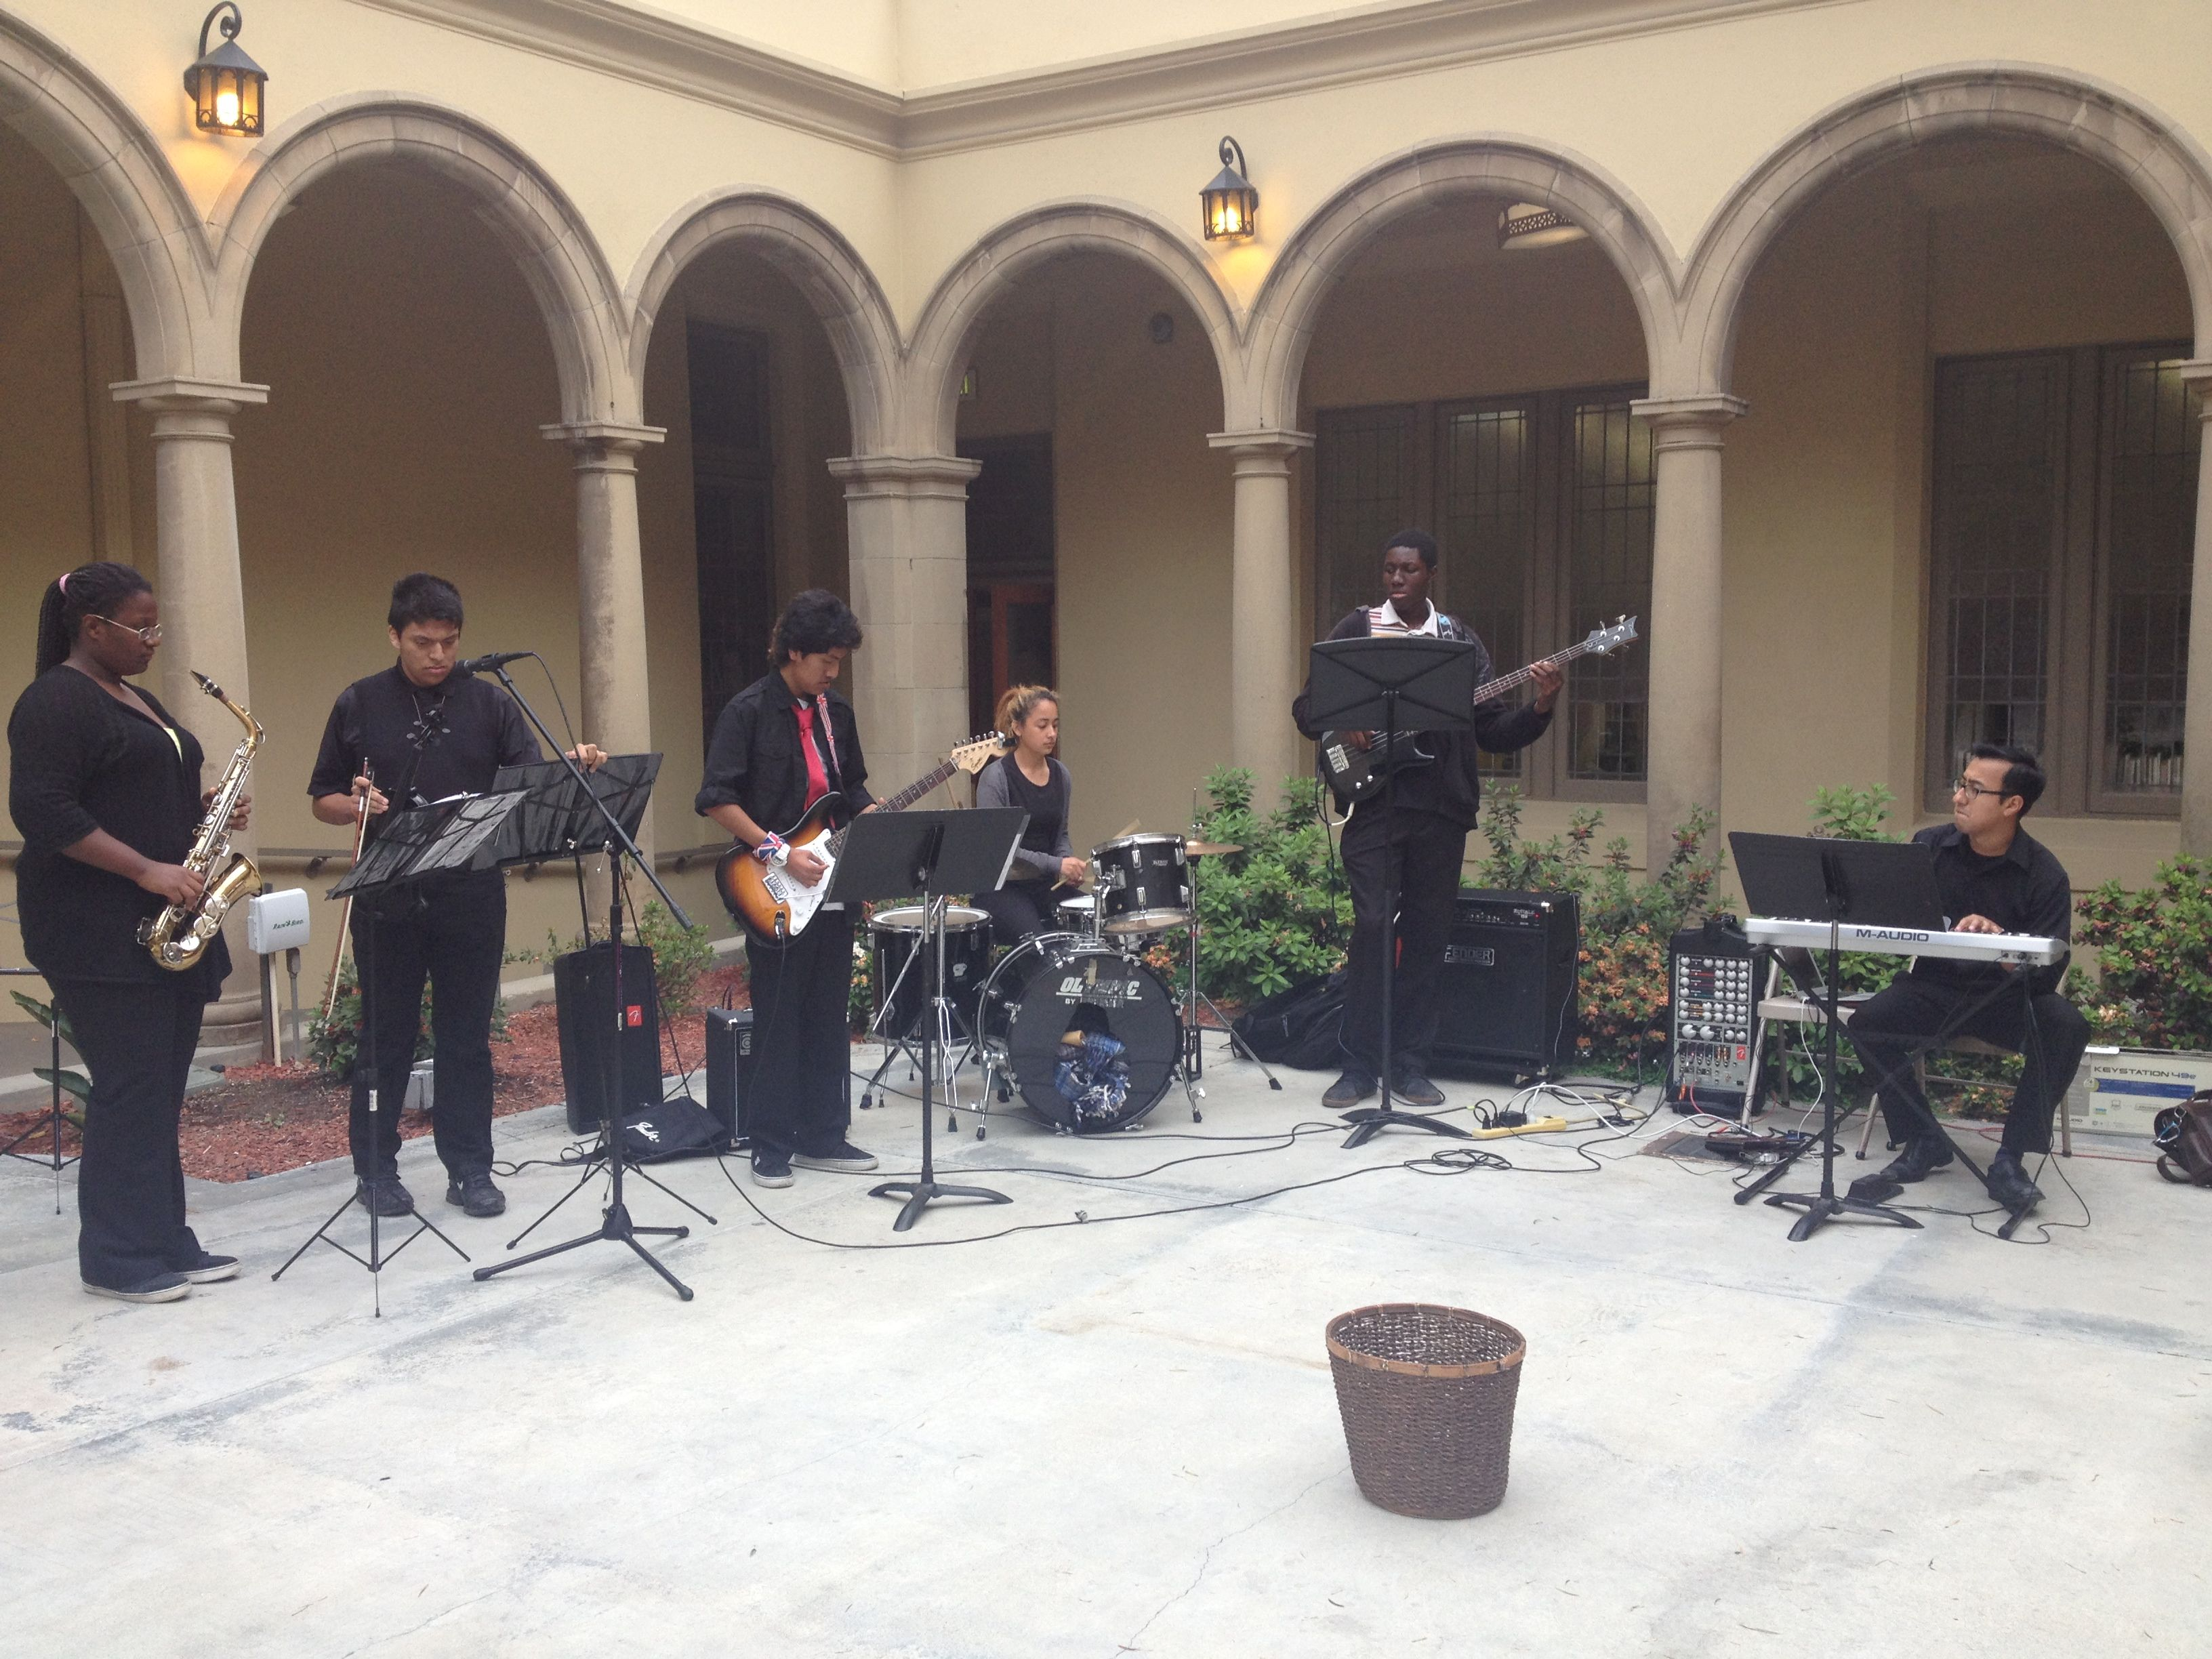 band_at_Pasadena_UMC_closeup.jpg